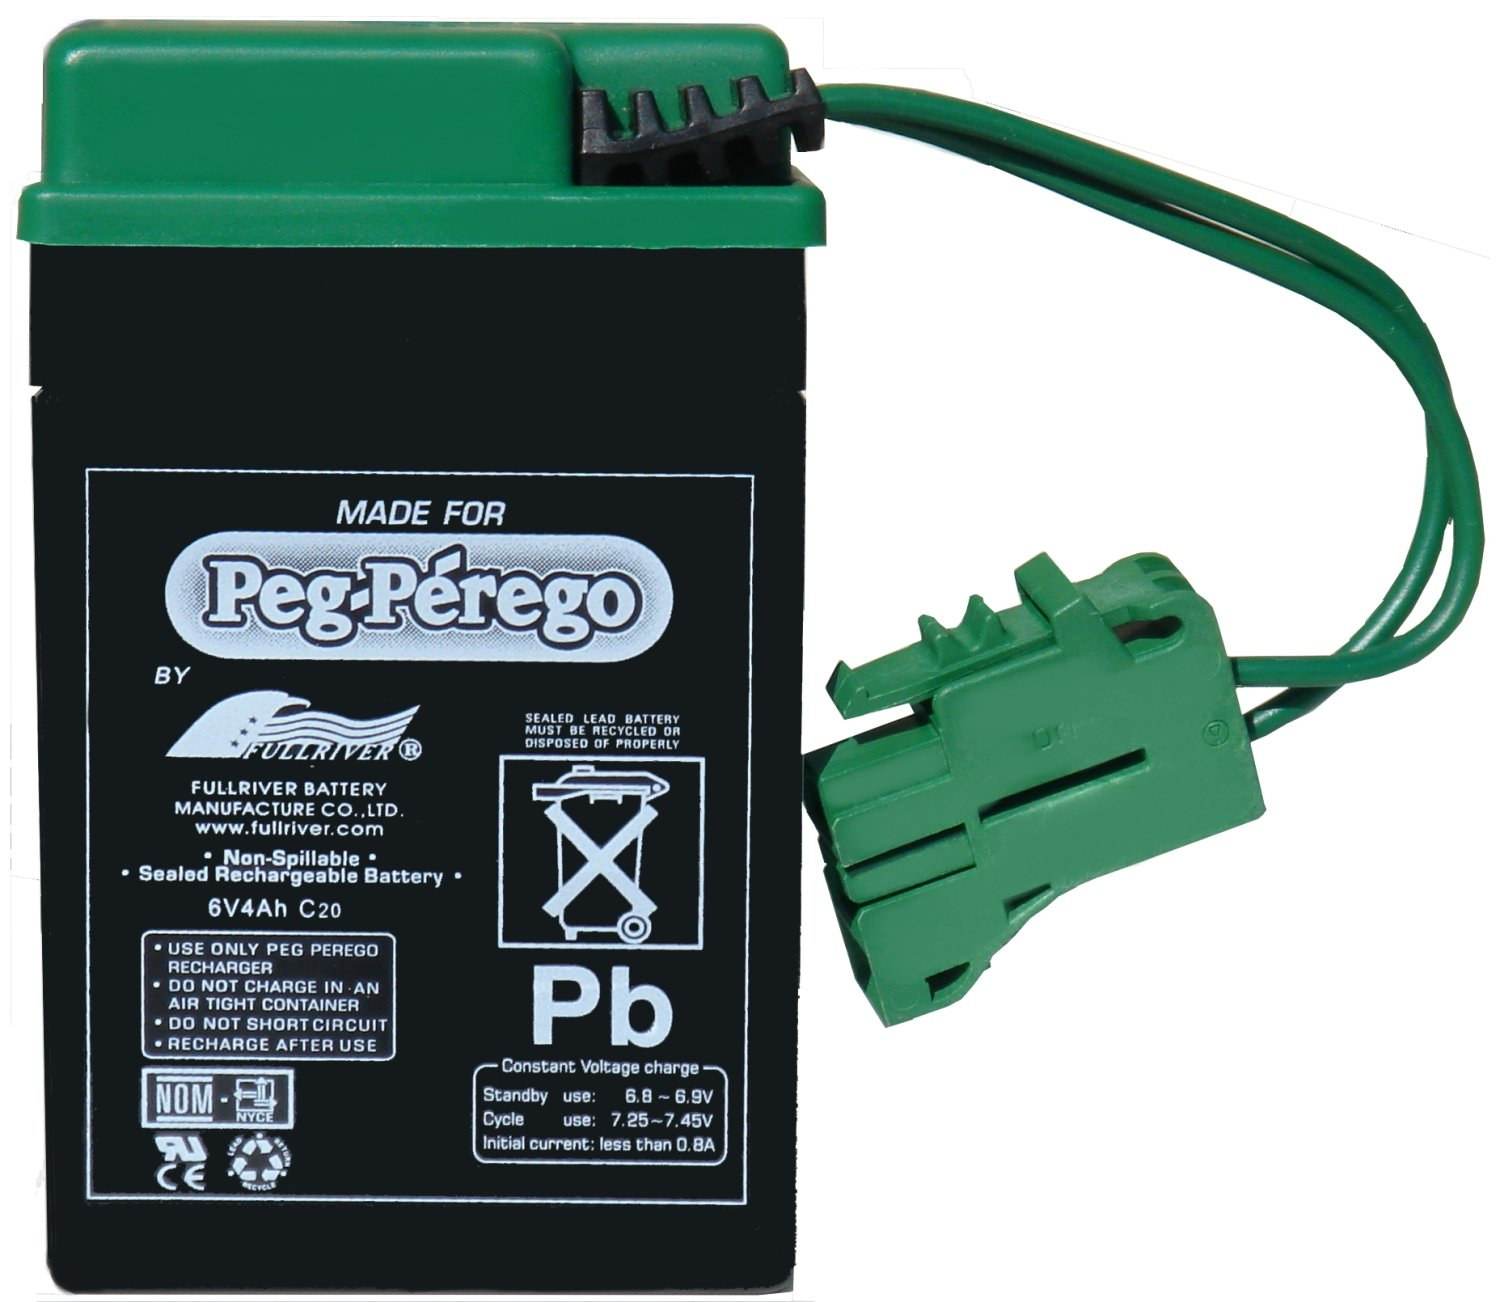 Amazon.com: Peg Perego 6 Volt Replacement Battery for Peg Perego Vehicles:  Toys & Games